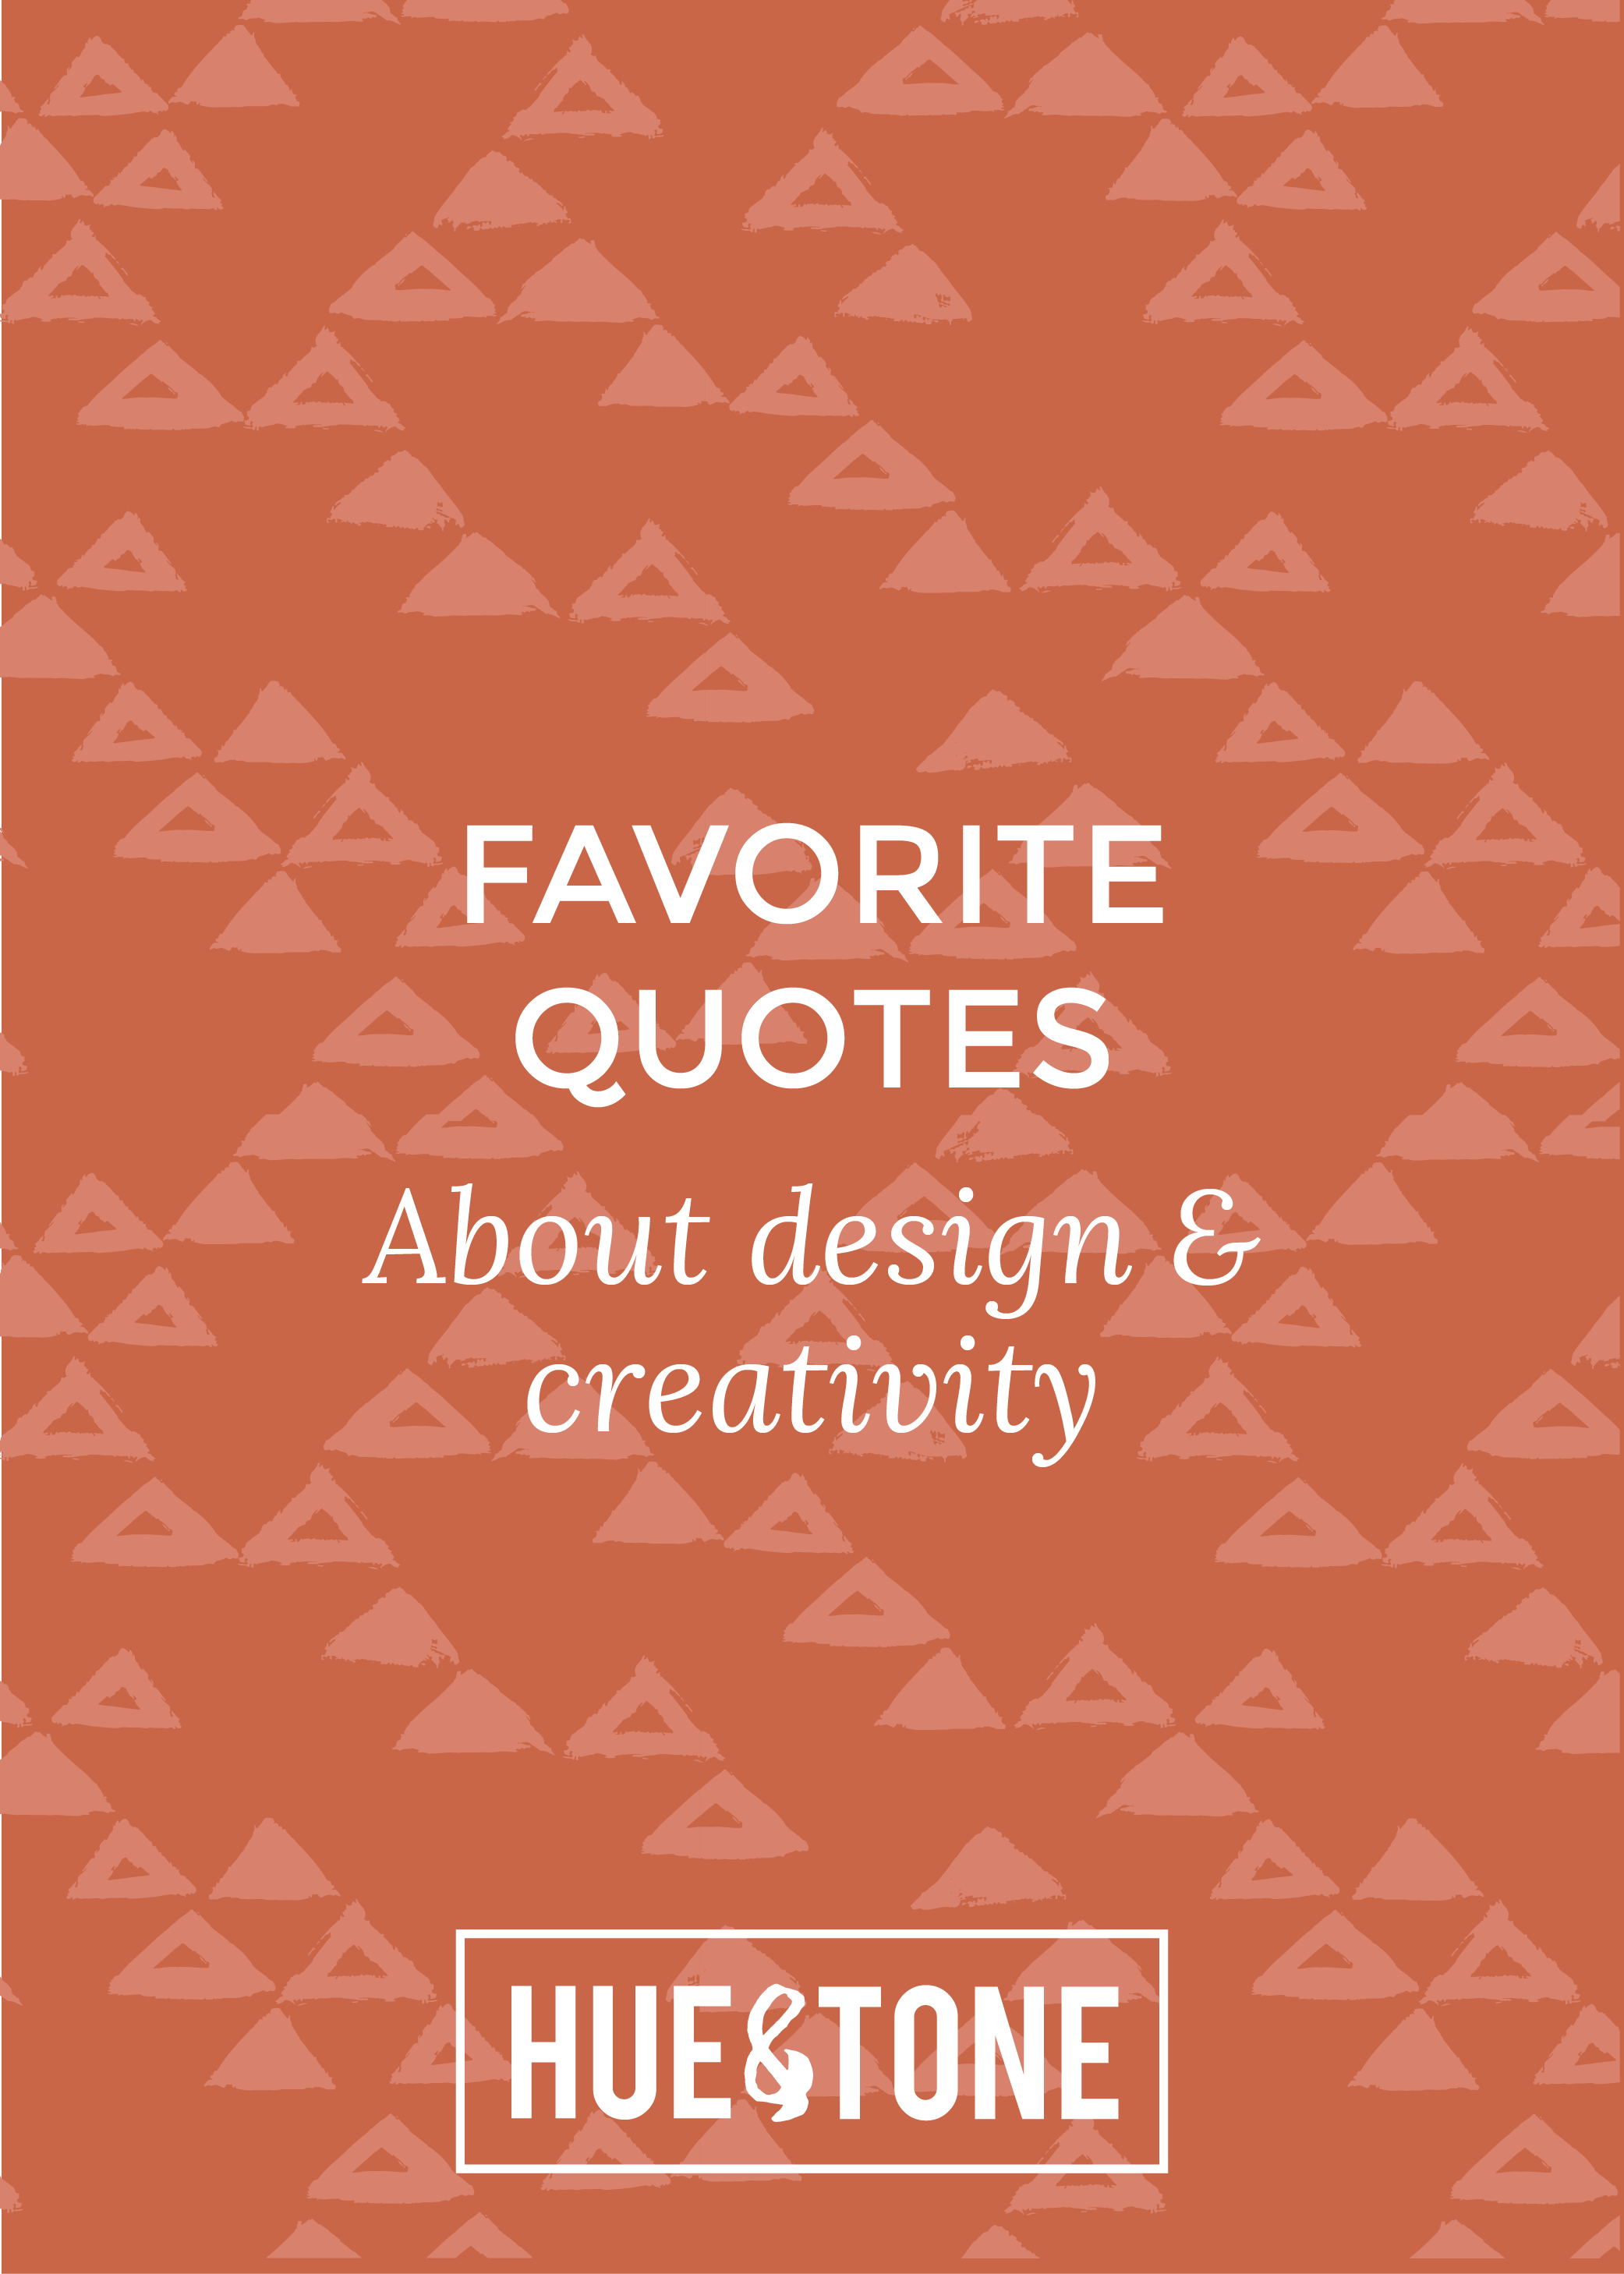 Hue & Tone Creative: Favorite quotes about design and creativity